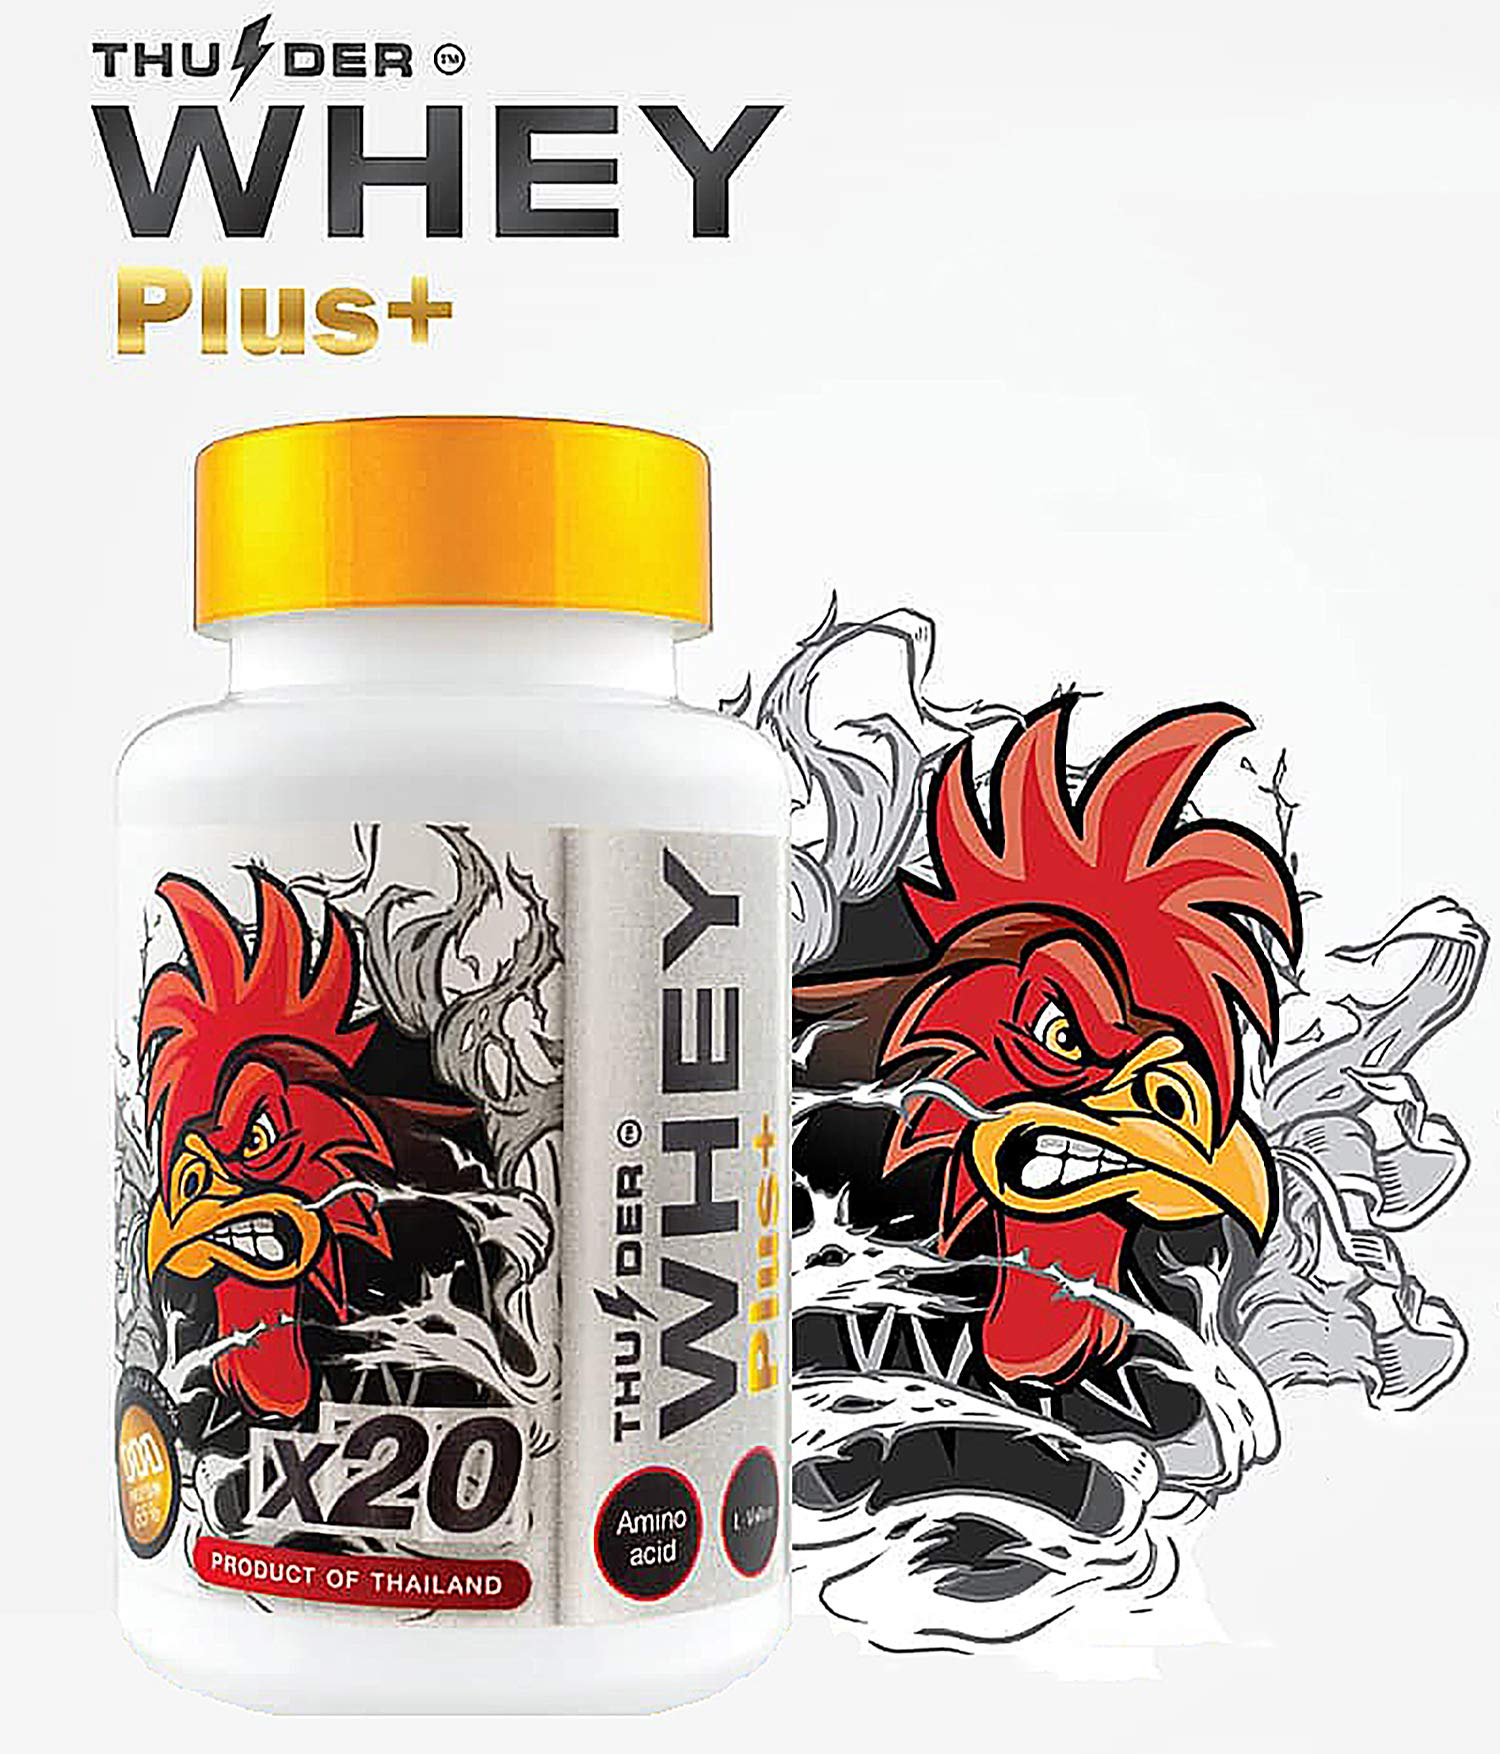 Faster X3 Formula Vitamins HEALTH SUPPLEMENT CAPSULES Rooster Booster Chicken Whey Protein Mixed Nourishing for Big Muscle & Mass Gain, Breeding, Healthy, Strong, Cock Fighting 60 Capsules Hen Feed by Thunder